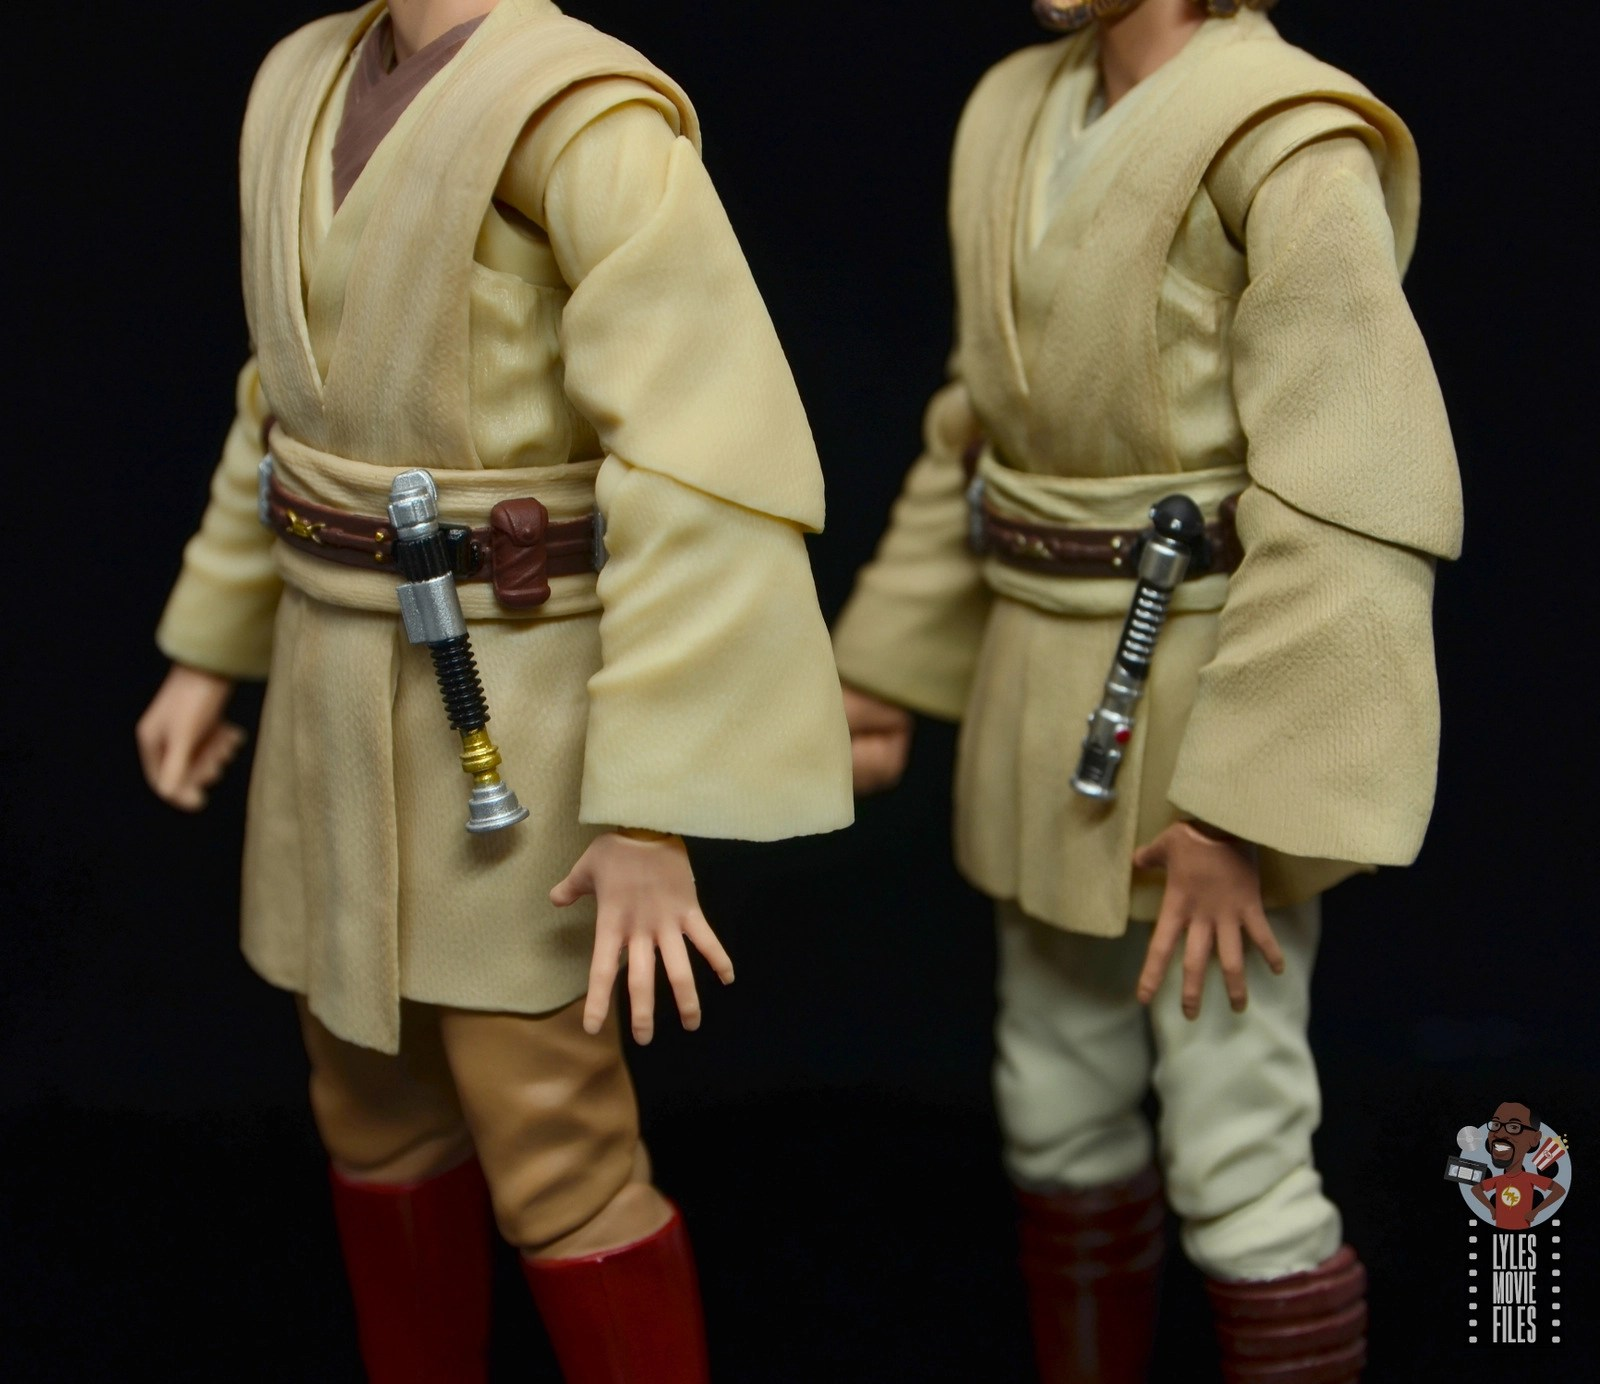 Sh Figuarts Obi Wan Kenobi Revenge Of The Sith Figure Review Difference With Attack Of The Clones Lightsaber Lyles Movie Files